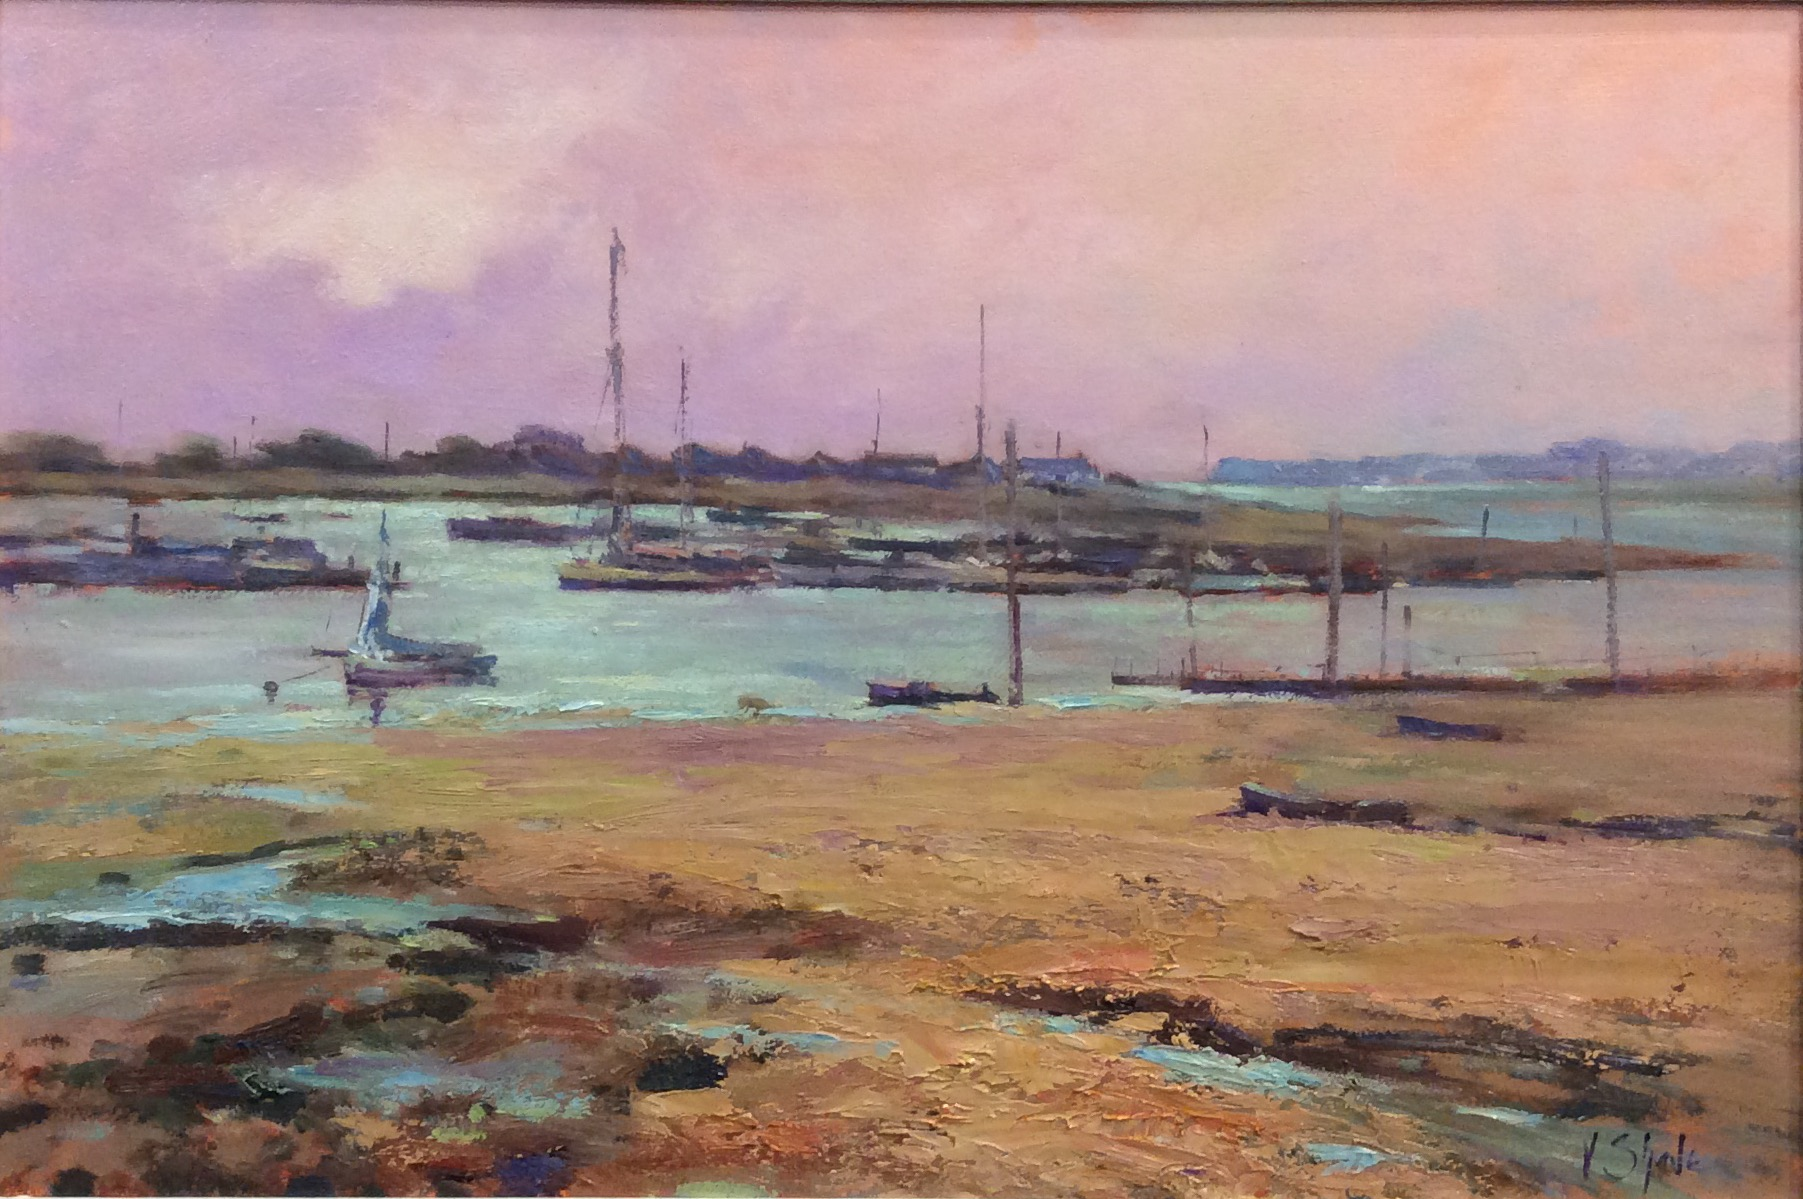 LATE AFTERNOON BRIGHTLINGSEA:  12 x 24 in:  Oil on board